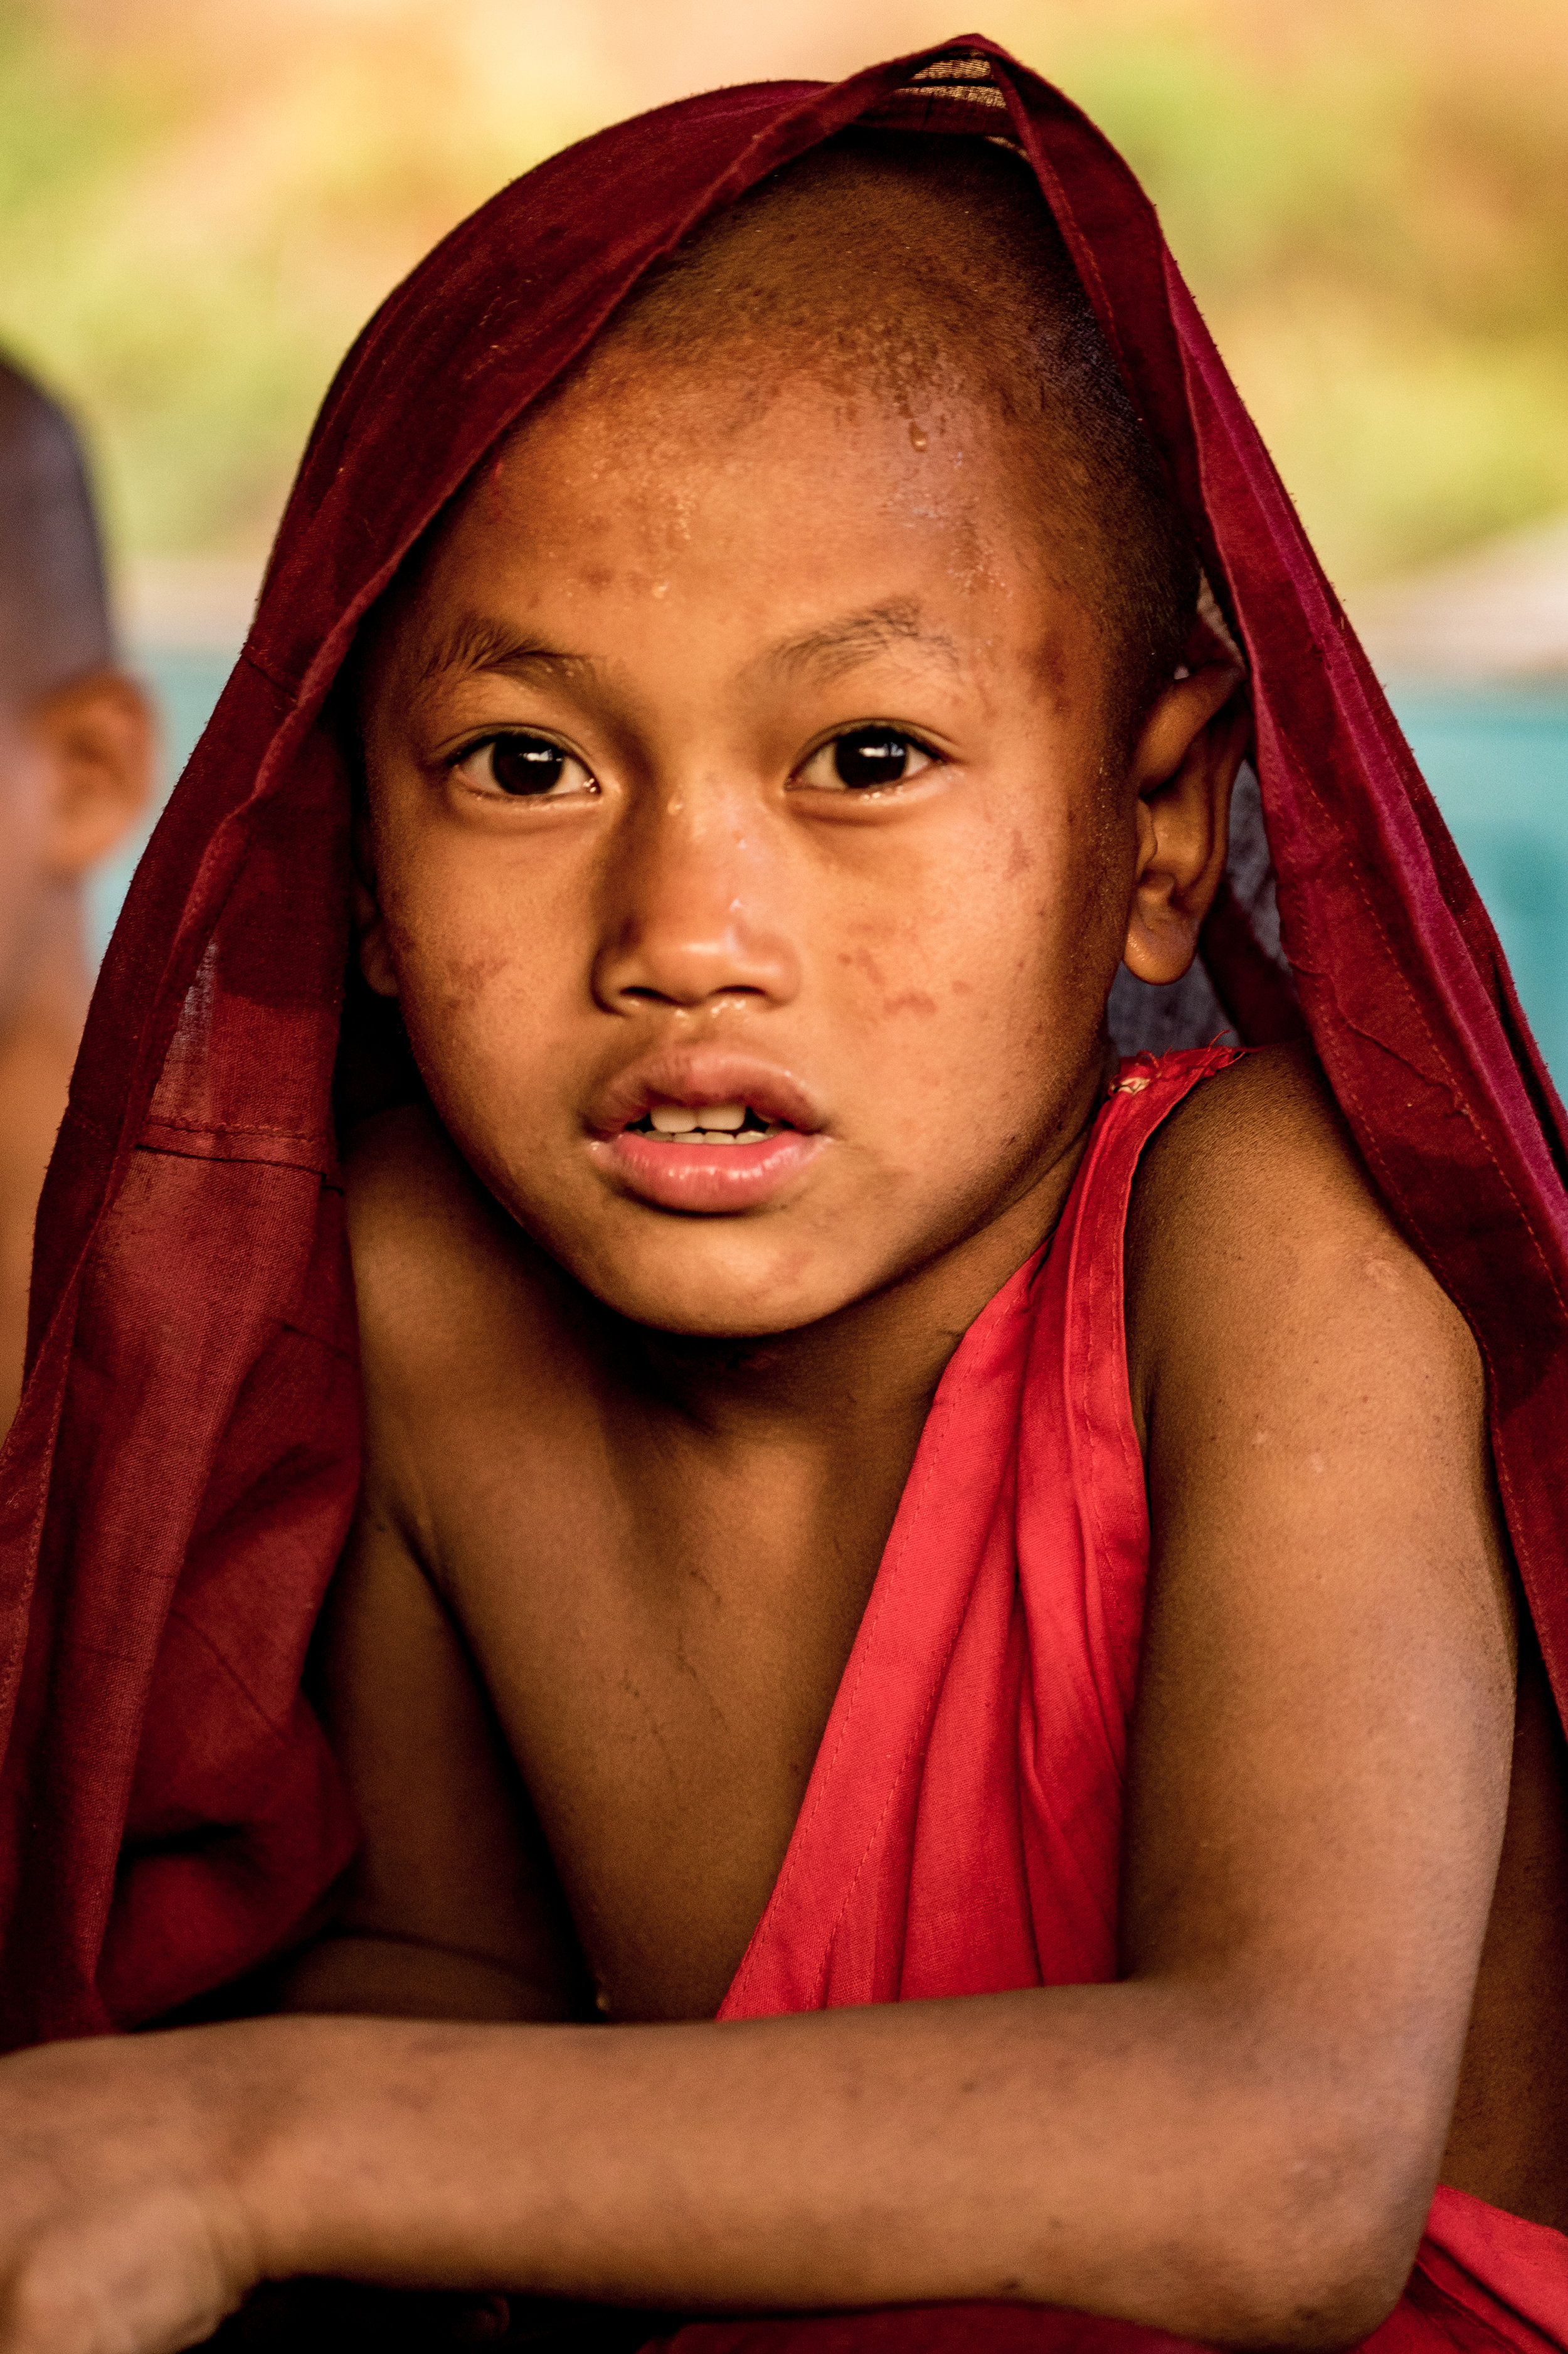 Young Monk - Kalaw